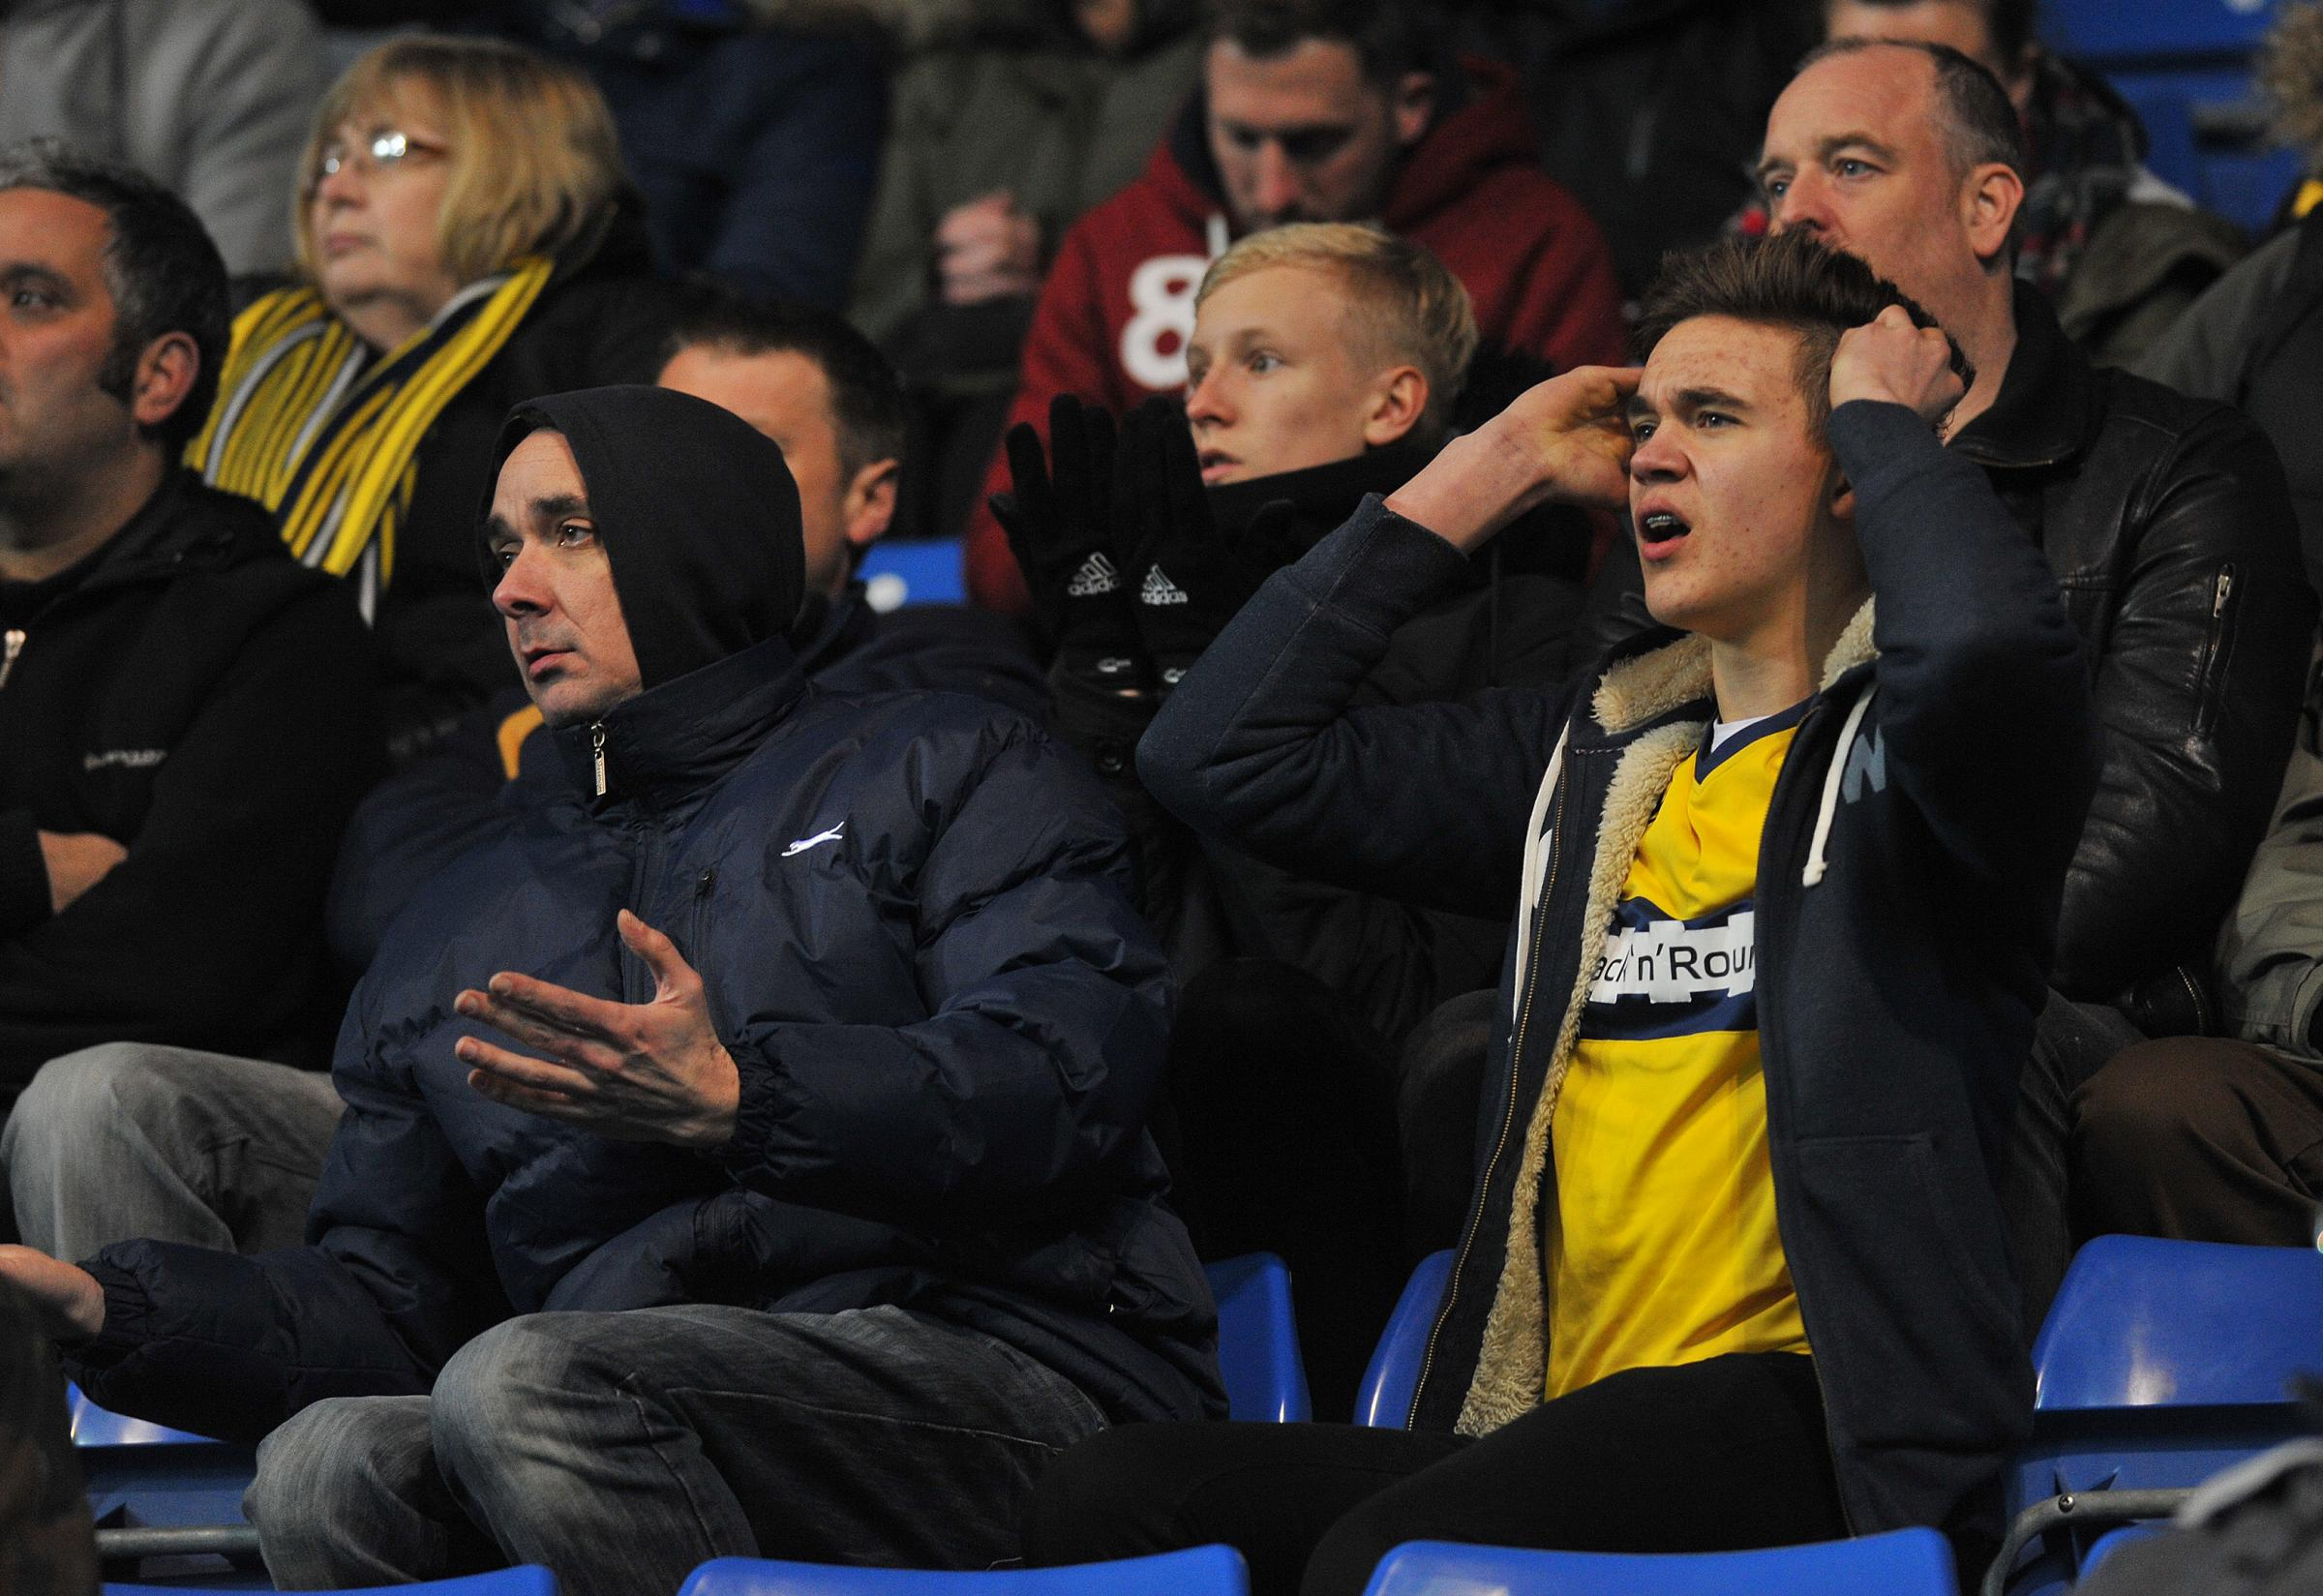 Oxford United supporters cannot take any more as their side lose 2-0 to Sky Bet League Two basement boys Hartlepool last night